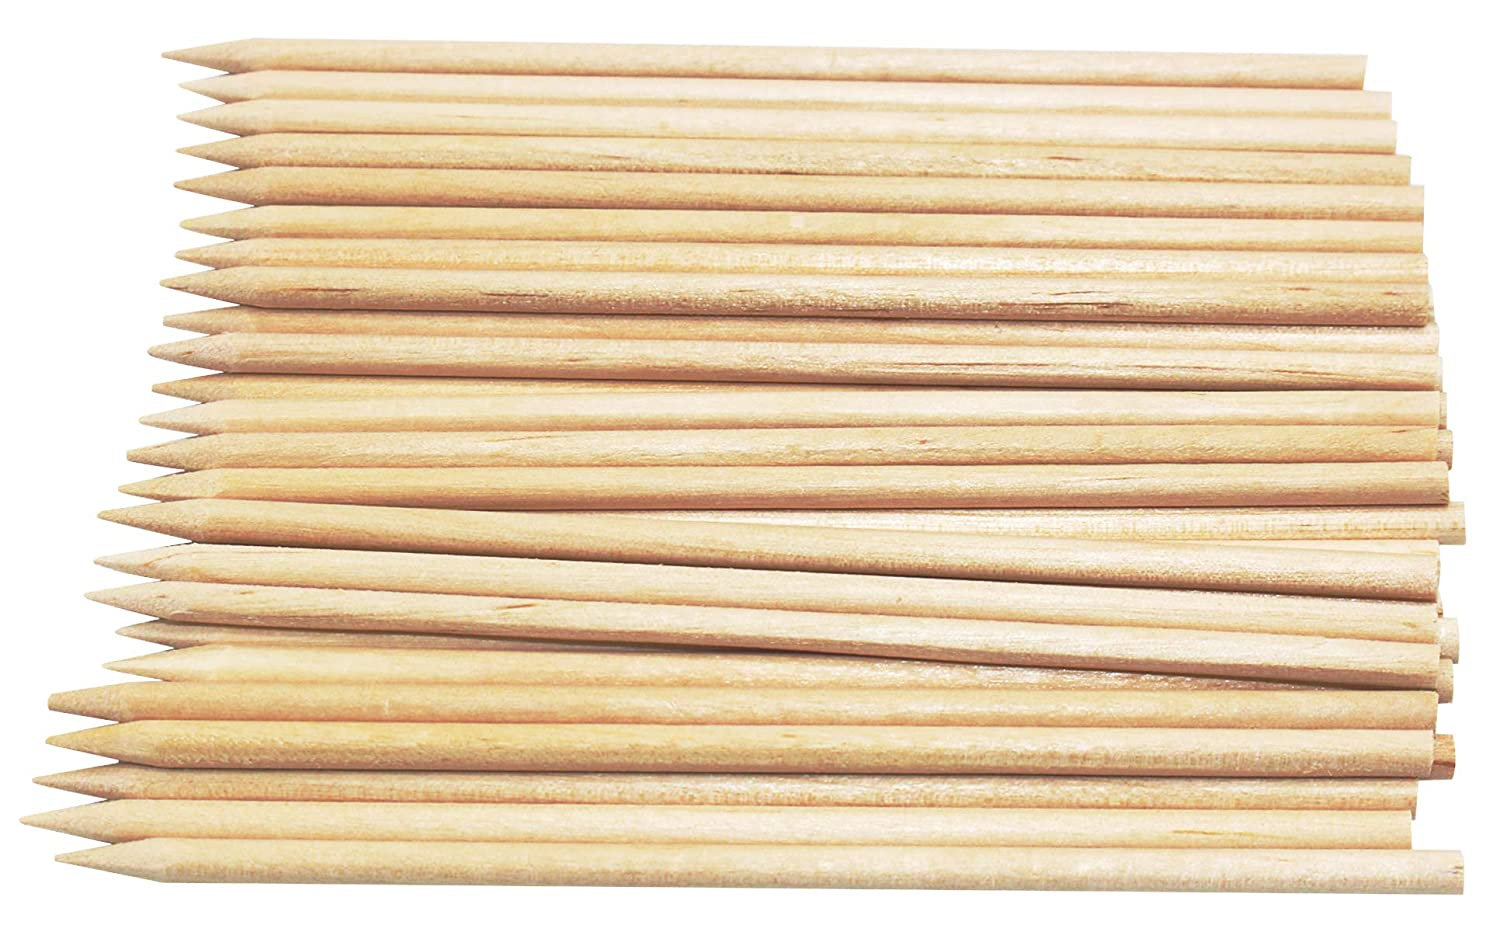 Heeler 200 Pcs Natural Birch Wood BBQ Skewers Candy Apple Skewers Sticks Length 4.5 inch